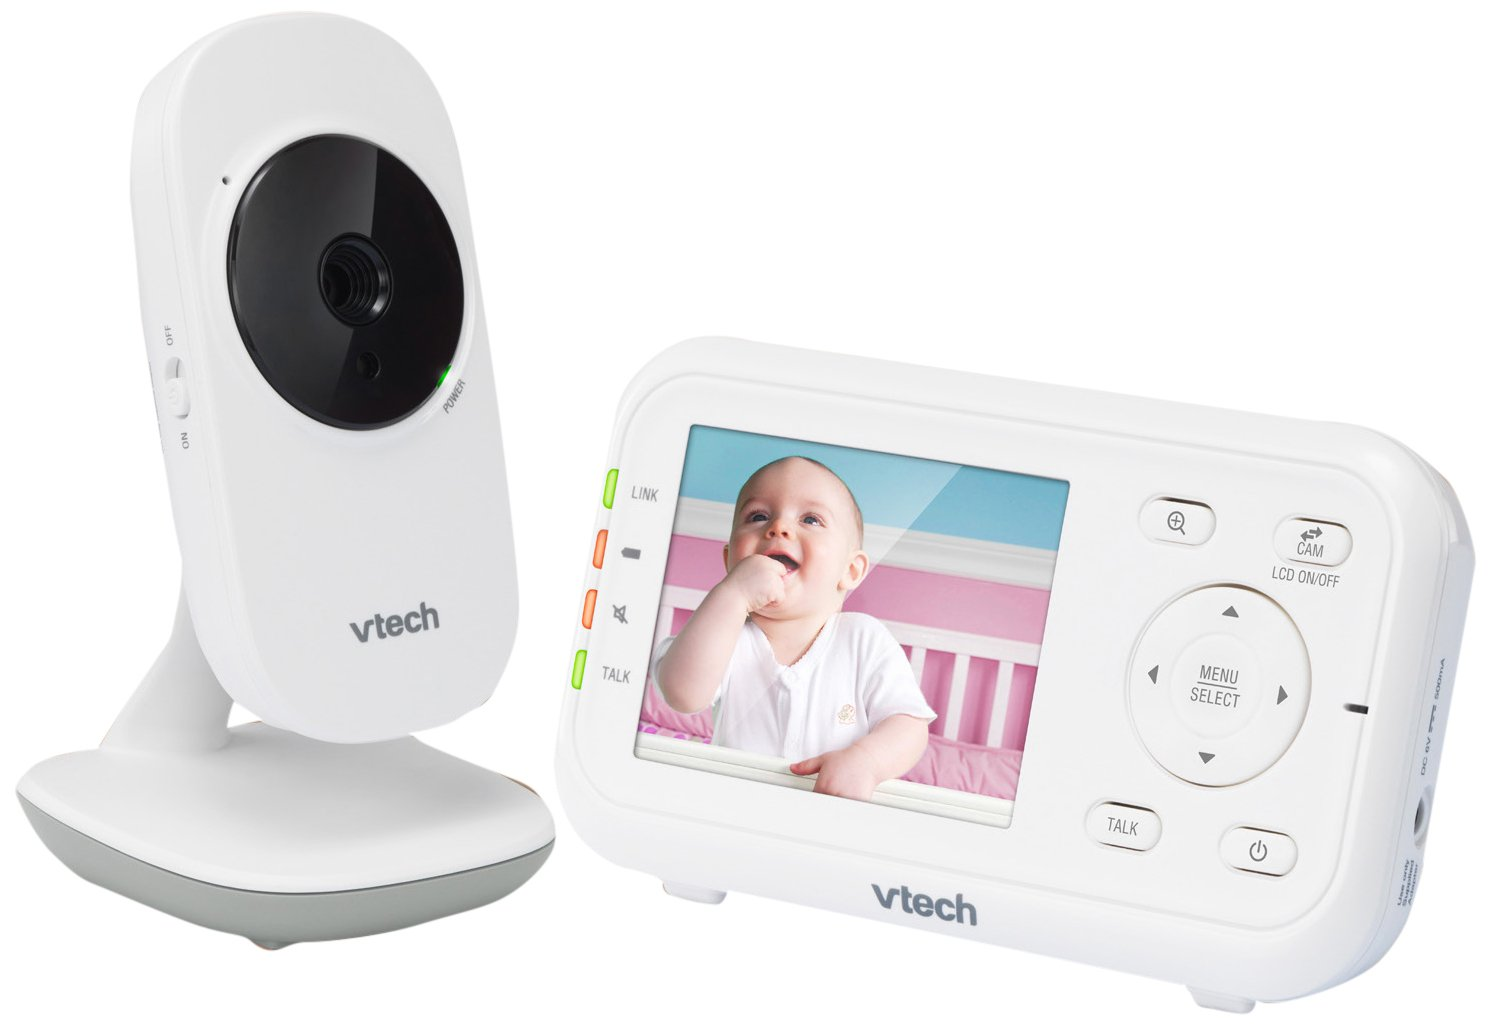 VTech VM3252 2.8'' Digital Video Baby Monitor with Full-Color and Automatic Night Vision, White